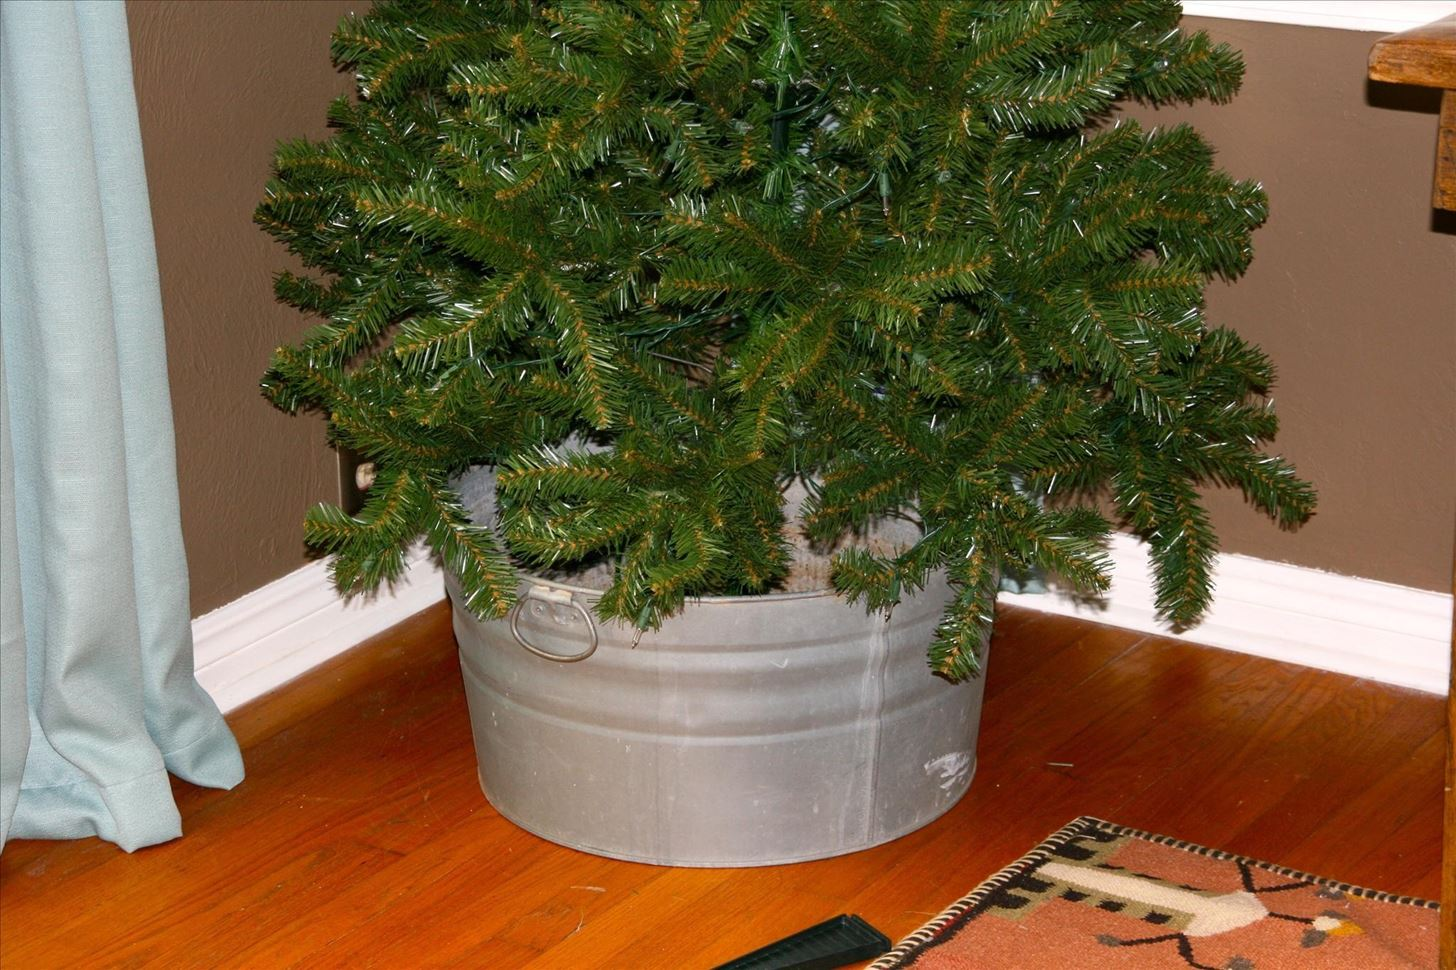 How To Make Your Own Tree Stand How To Get A 5 Christmas Tree And How To Take Care Of It